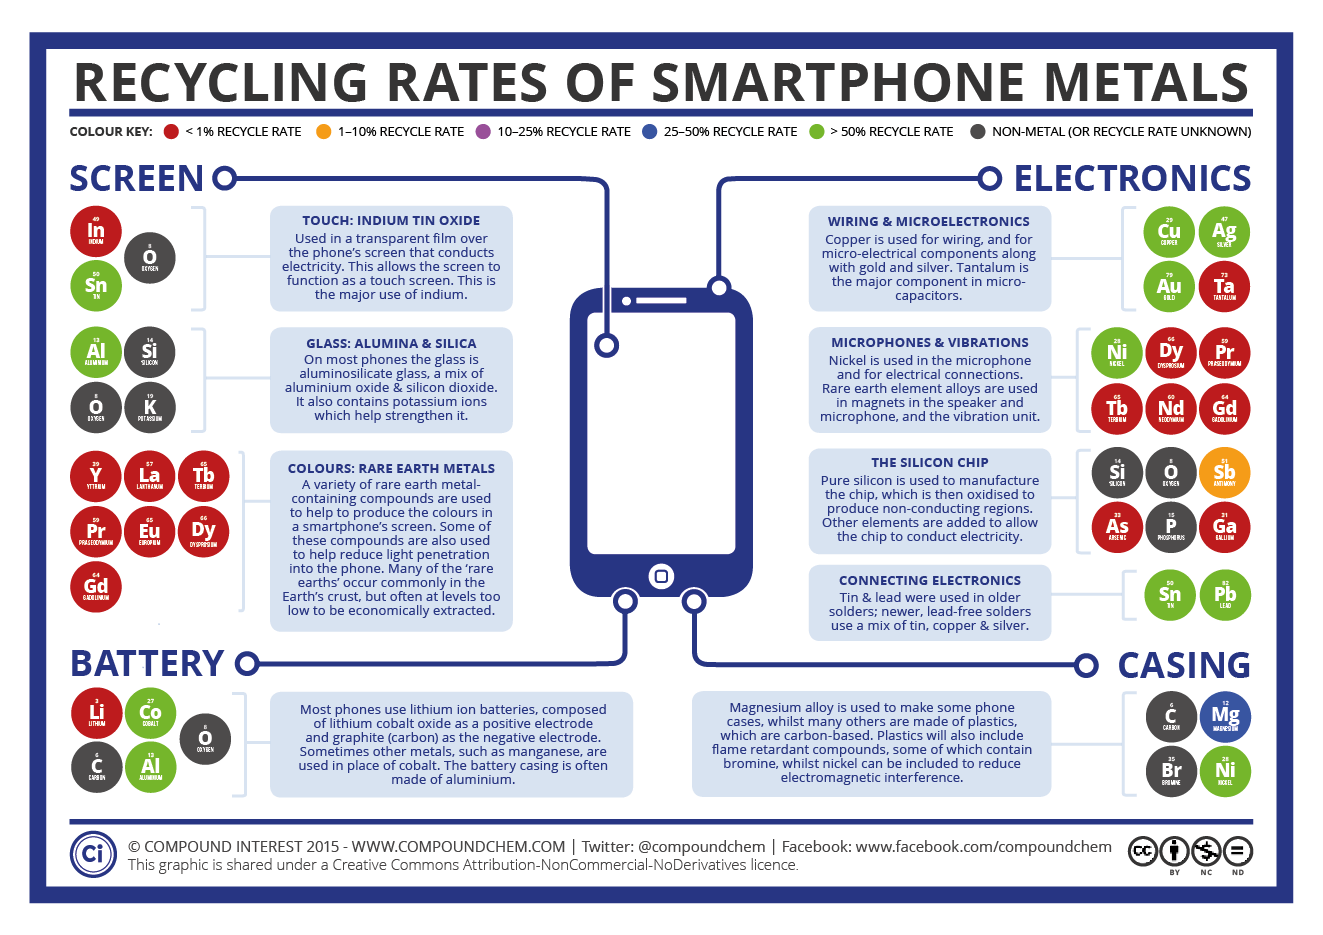 Compound interest the recycling rates of smartphone metals click to enlarge gamestrikefo Choice Image